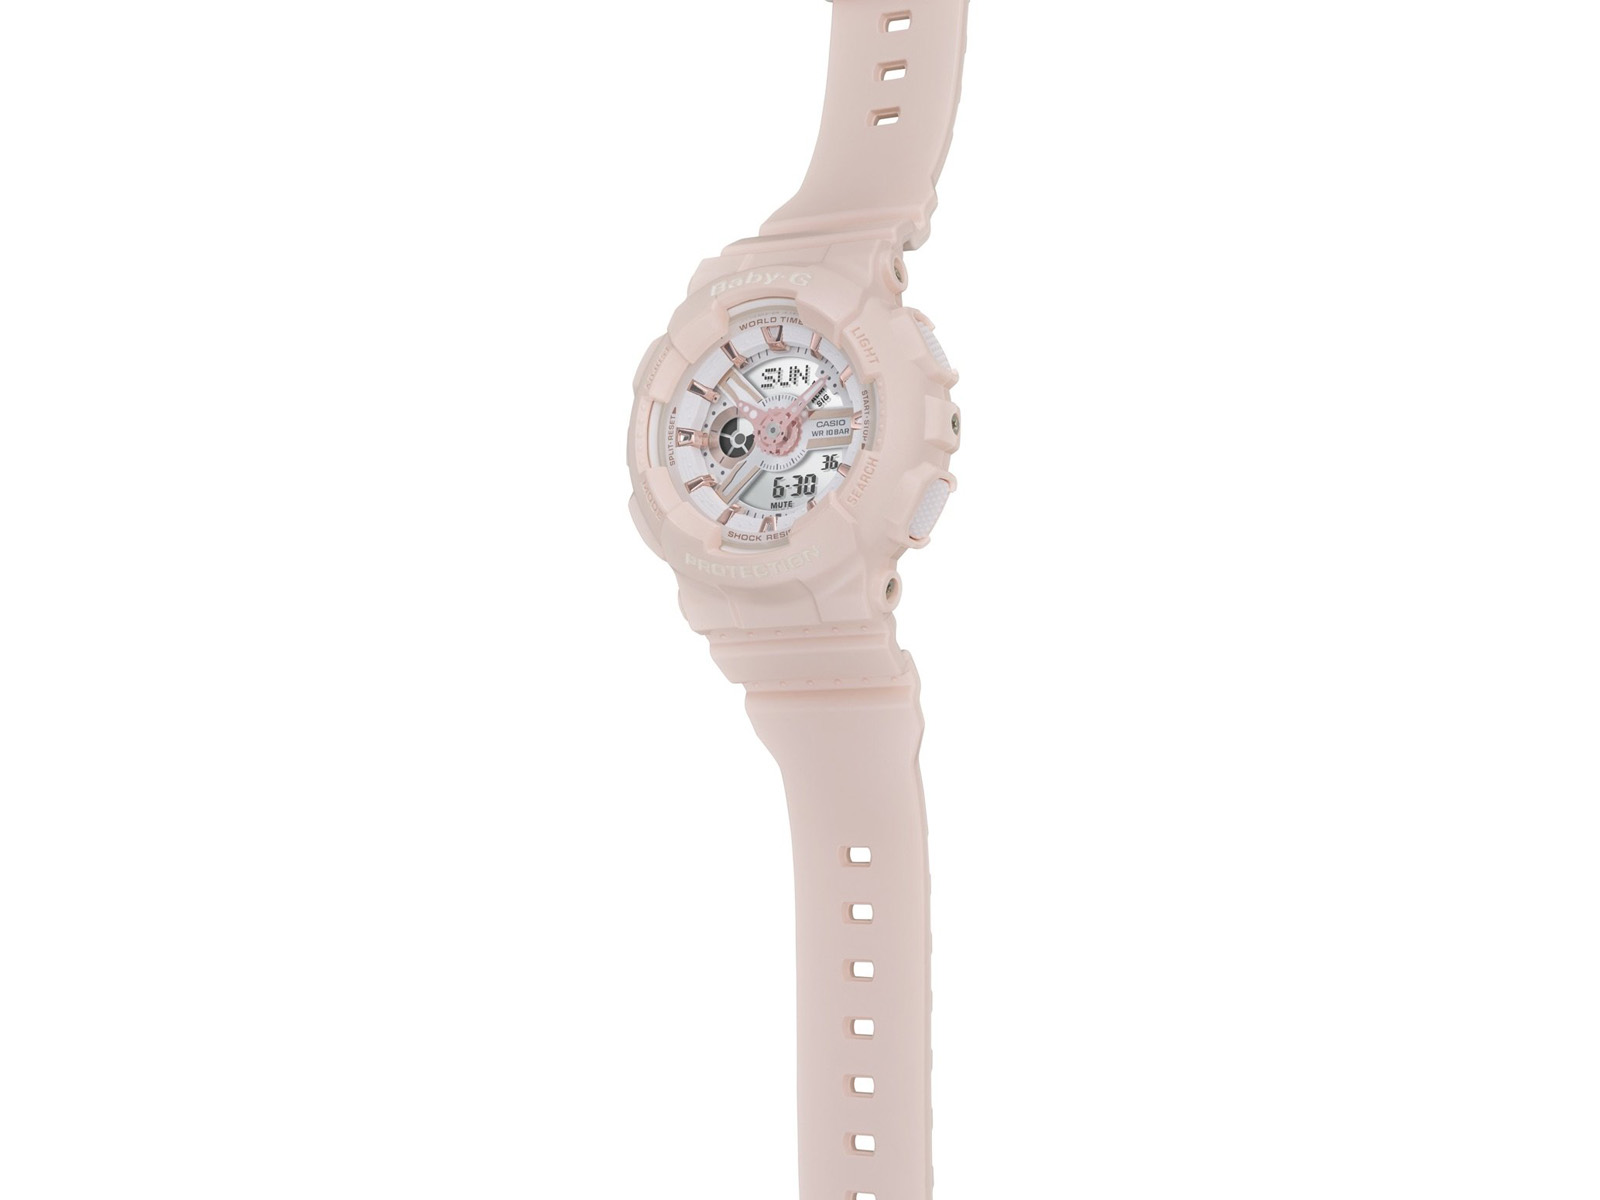 Casio Baby-G BA-110RG-4ADR Ladies Digital Analog Dial Beige Resin Strap Machtwatch